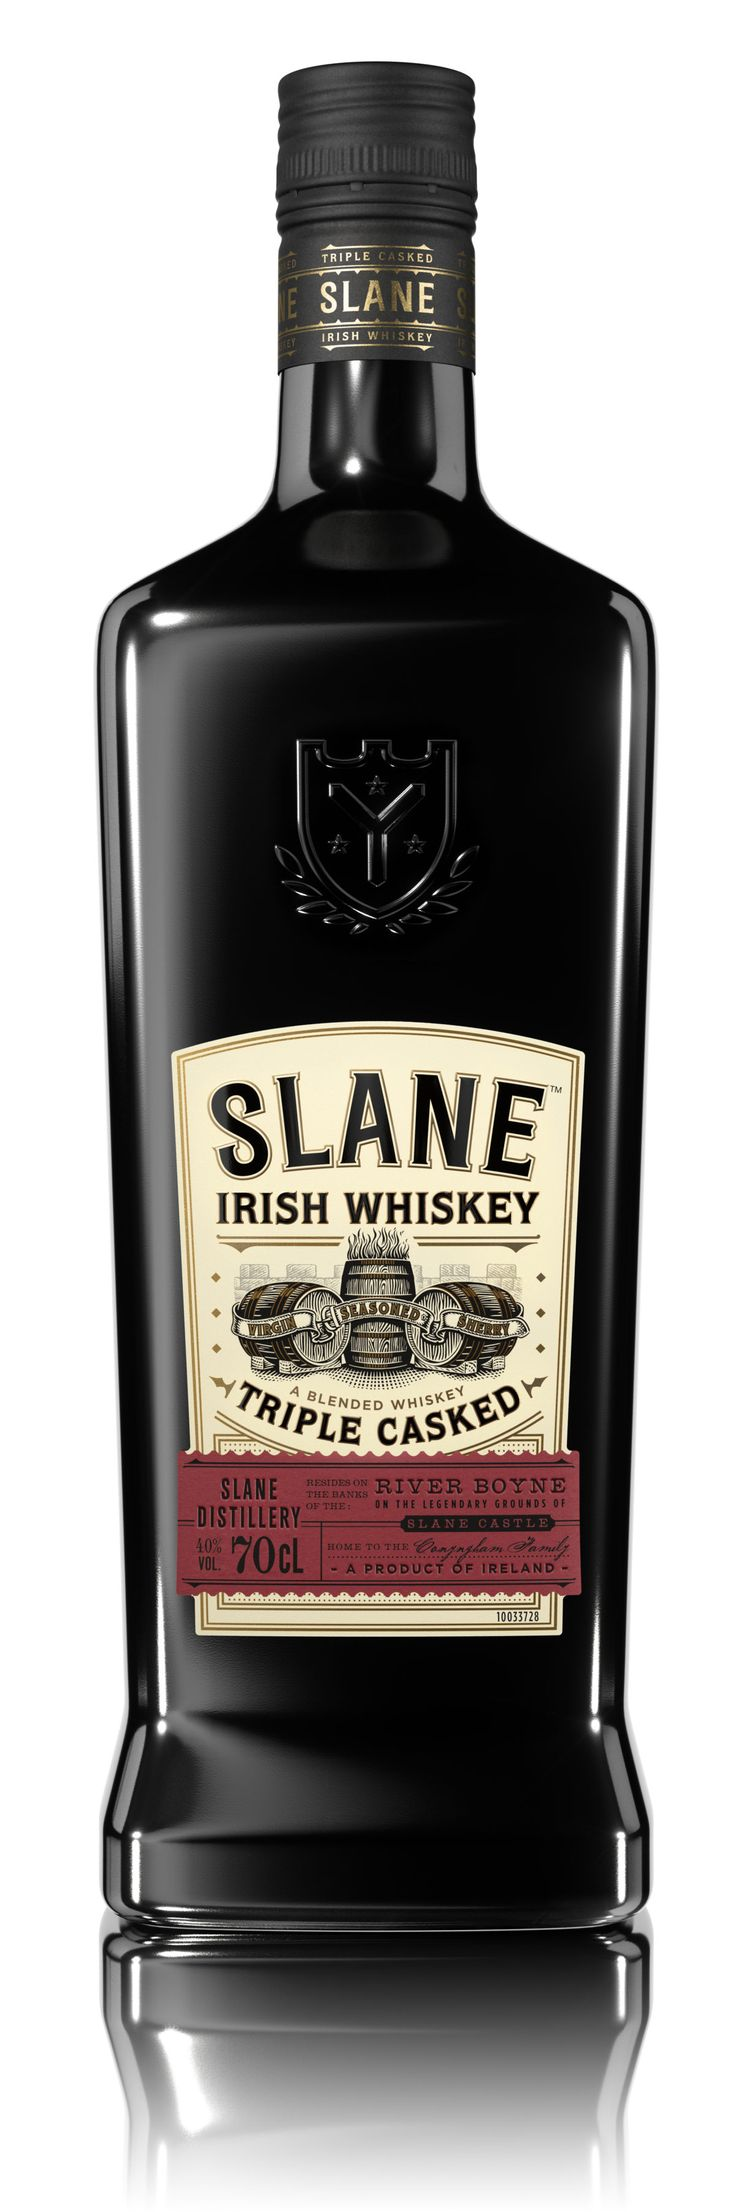 Stuart attends the Dublin launch of Slane Irish Whiskey. Launch of Slane Irish Whiskey in Dublin. May 2017. About two years ago, I was invited to speak at the European Food and Drink Conference at the Aviva in Dublin on the subject of Protecting Irish Whiskey. One of the key issues I spoke about on..